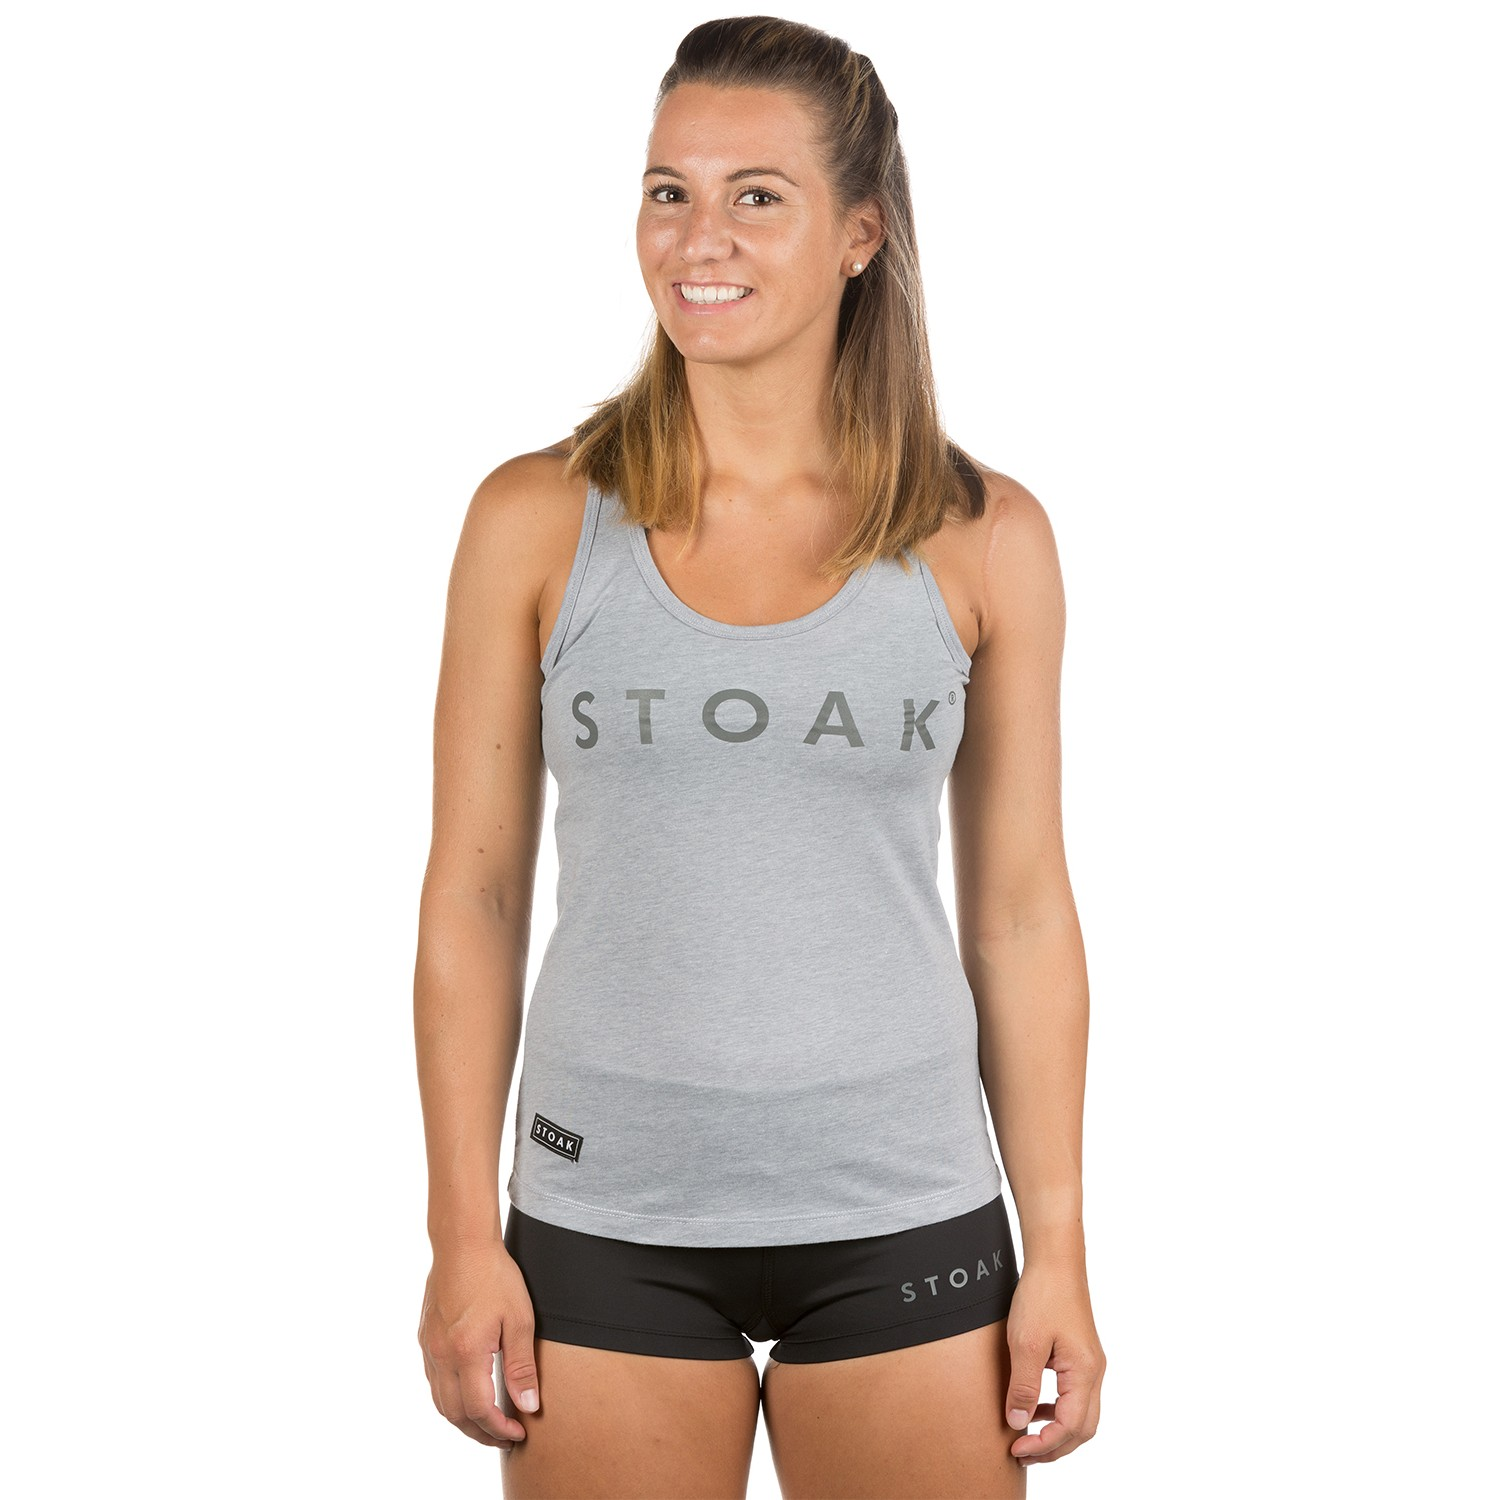 STOAK ROCK II Tanktop